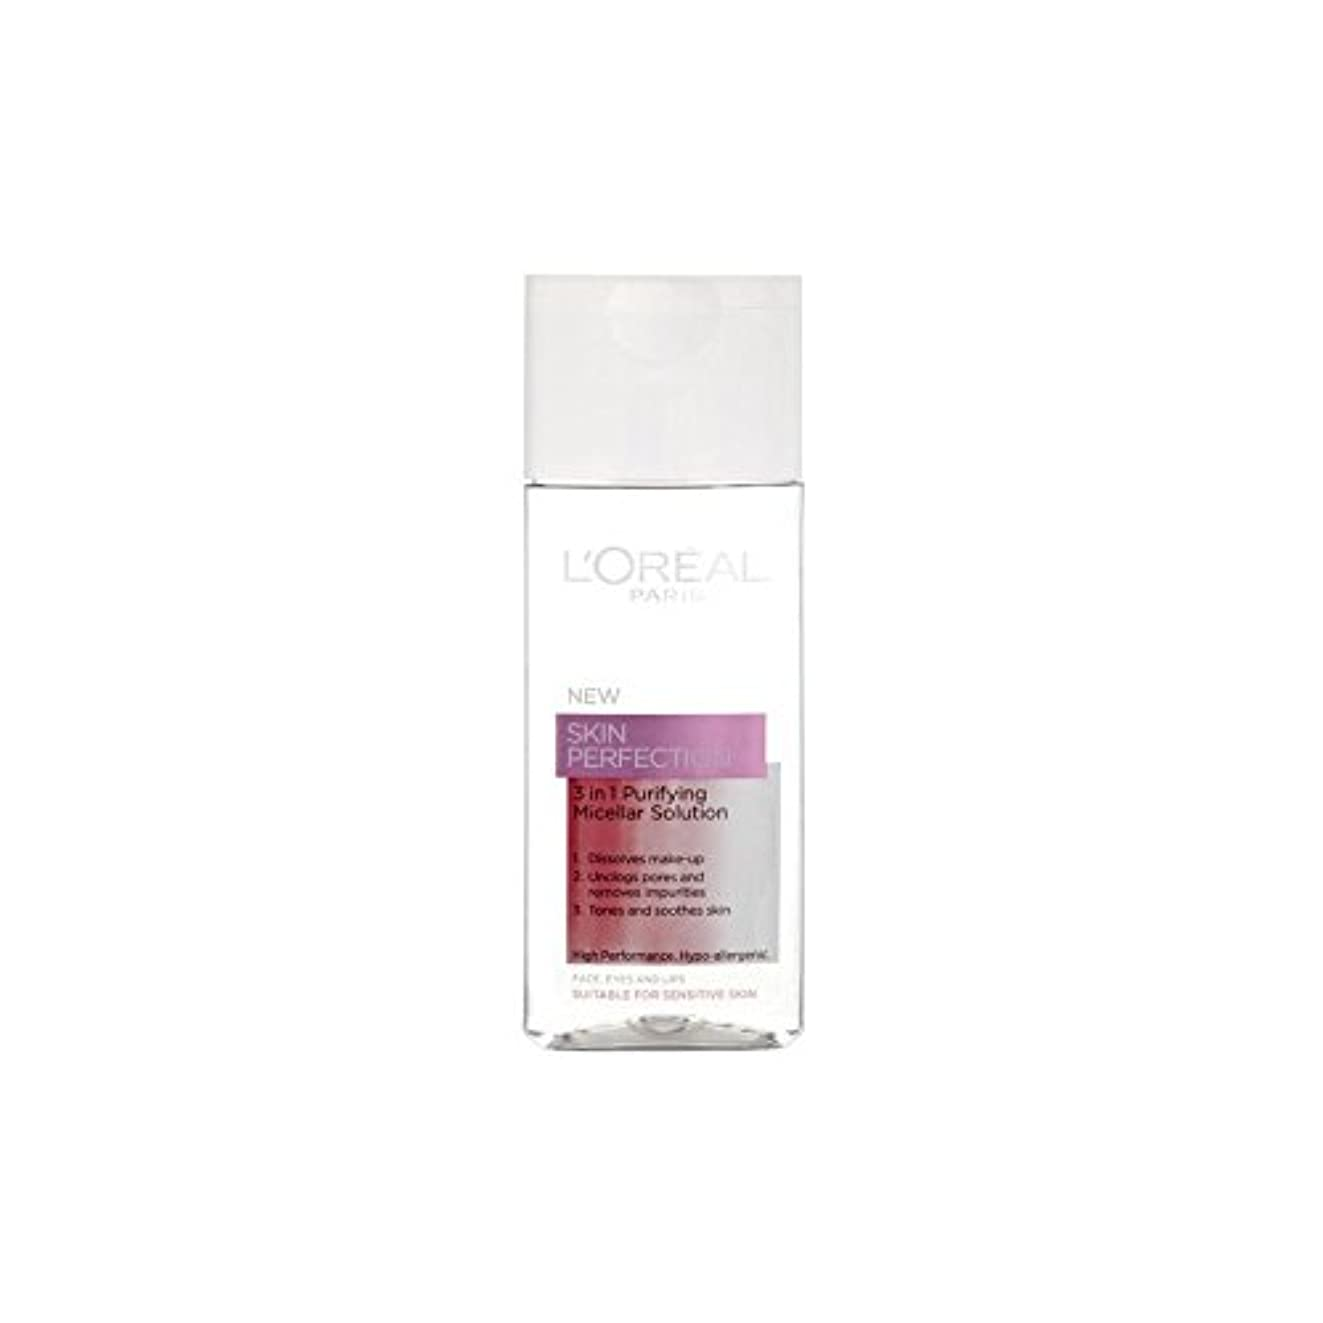 L'Oreal Paris Dermo Expertise Skin Perfection 3 In 1 Purifying Micellar Solution (200ml) (Pack of 6) - 1つの精製ミセル...